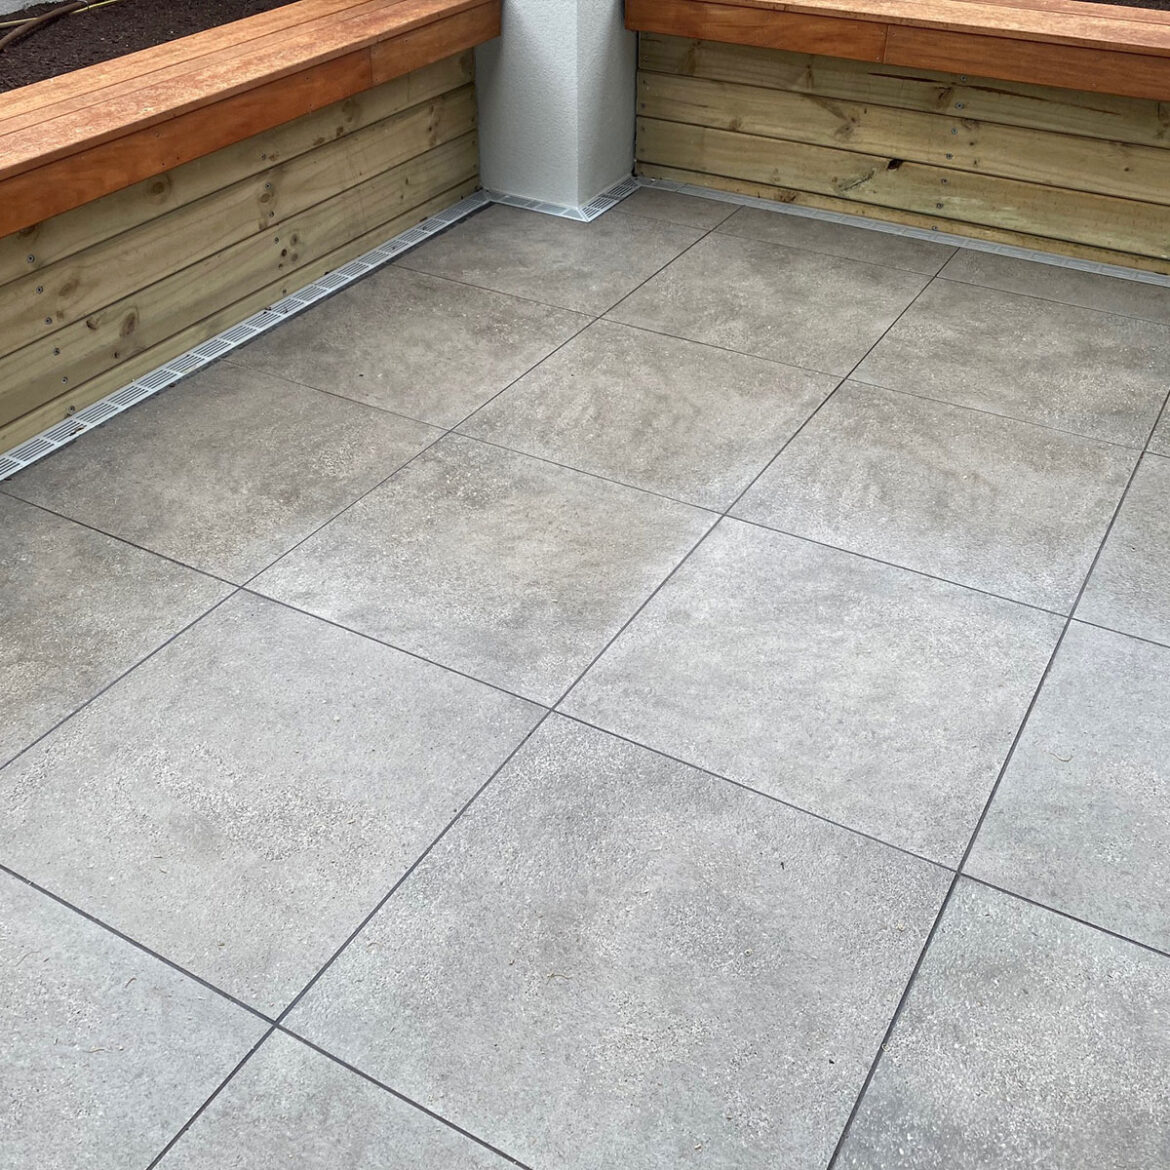 Riggas East Auckland Paving Services